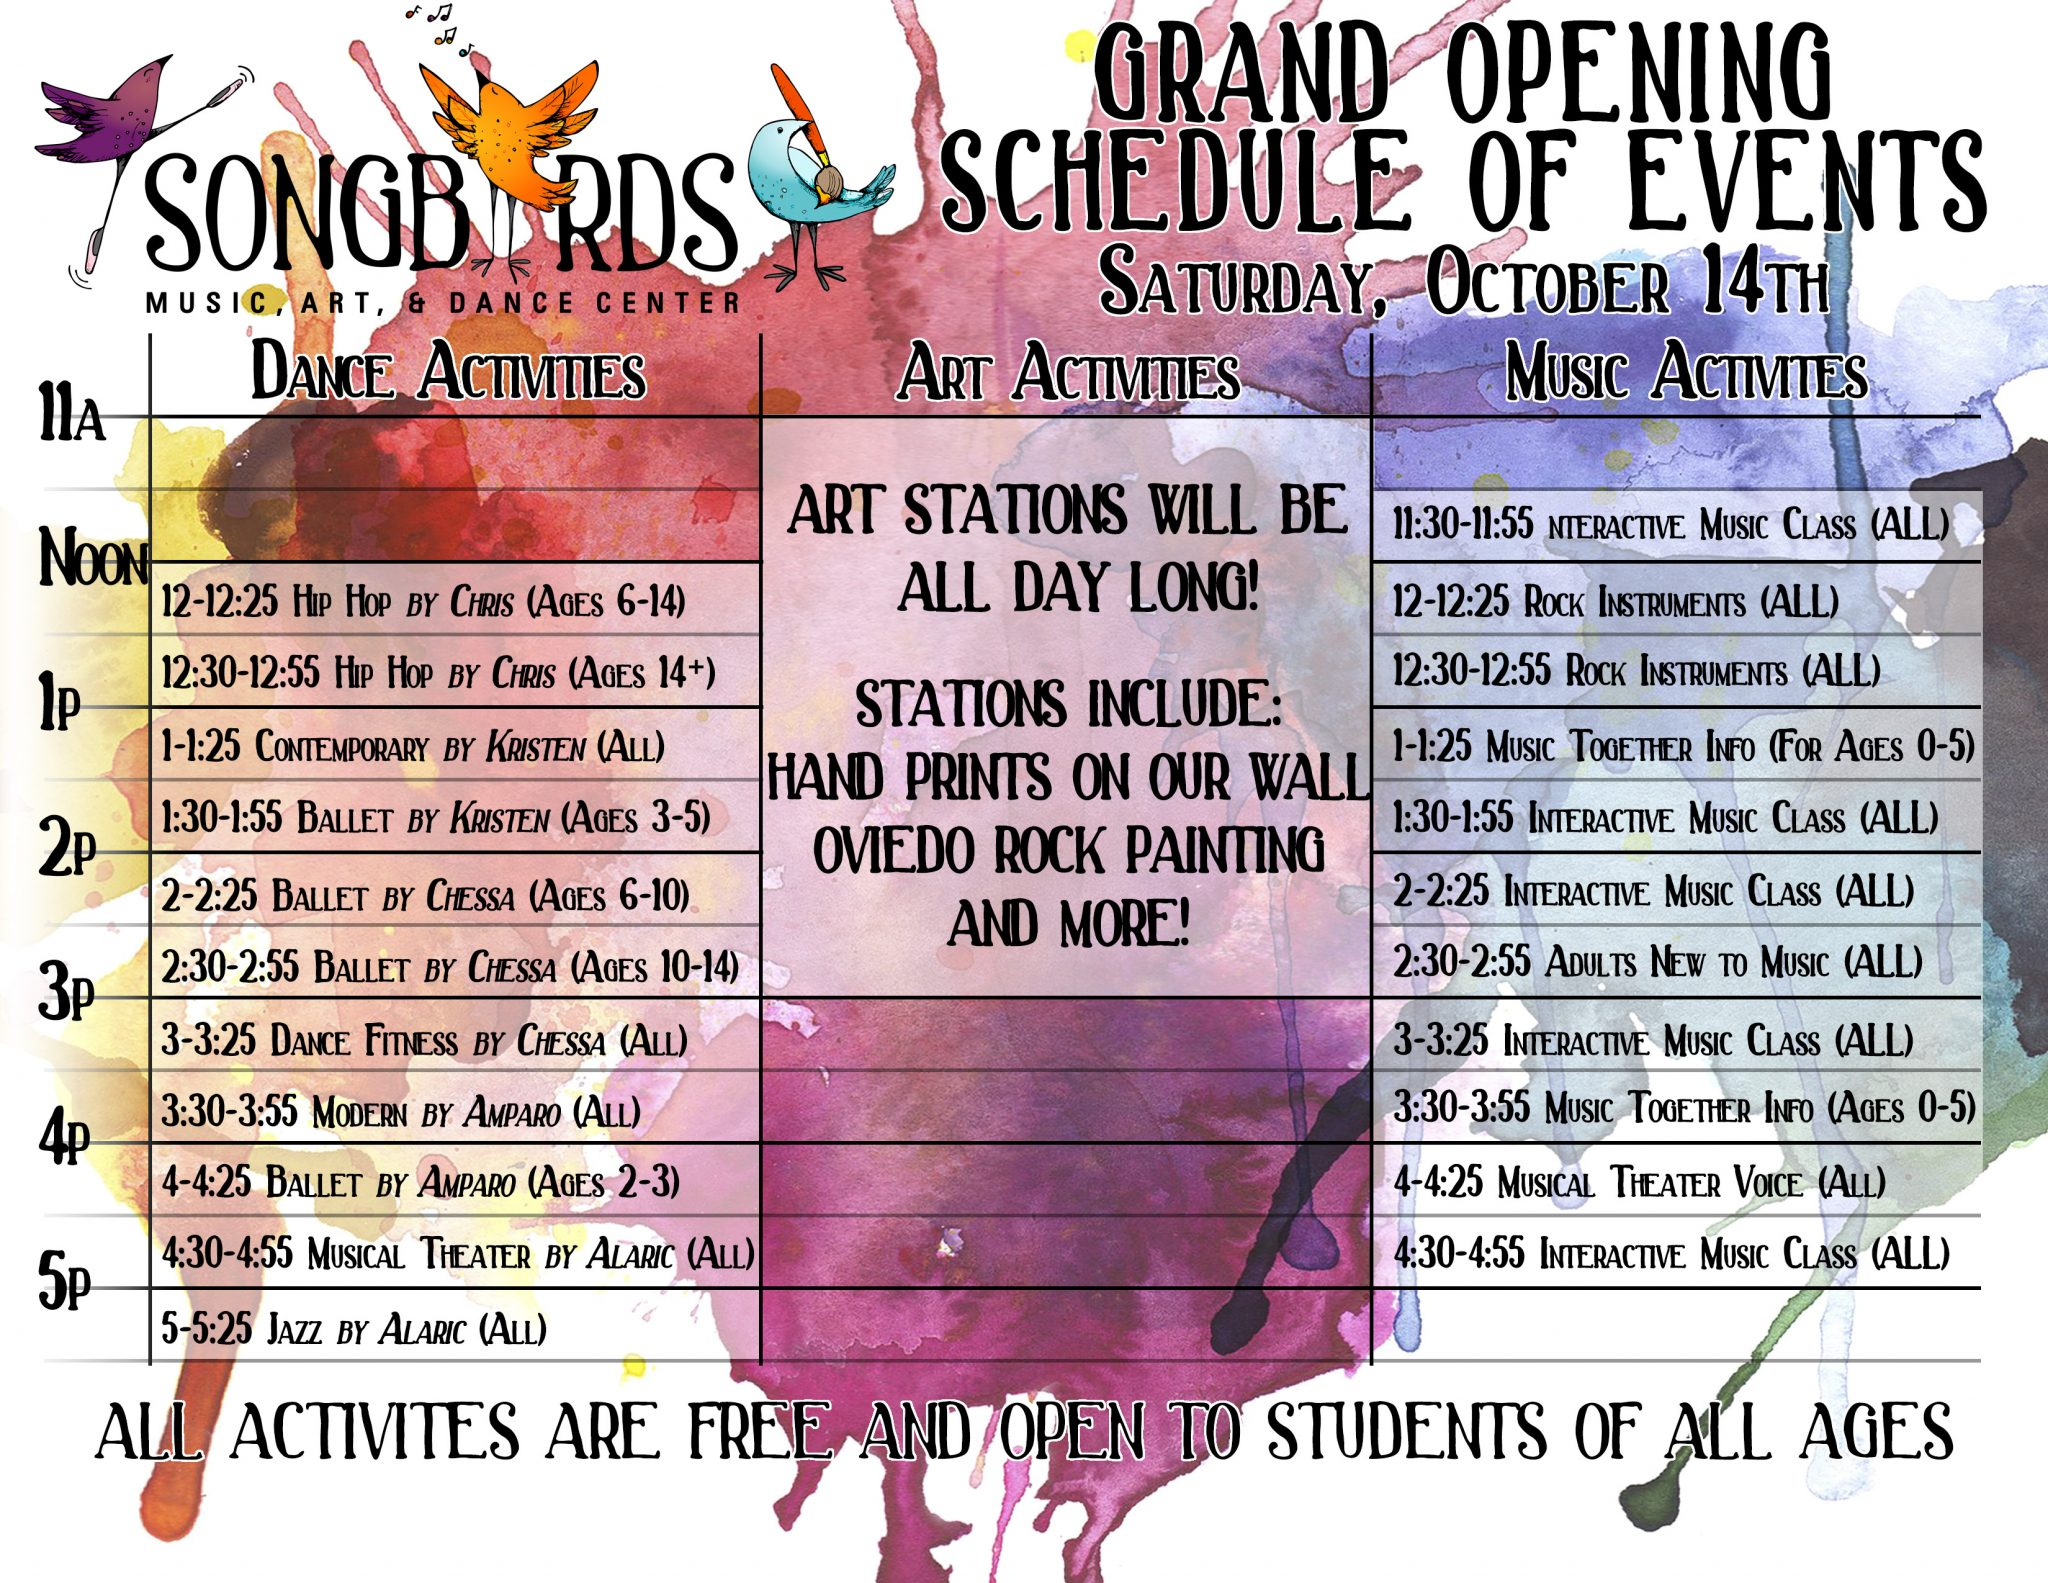 grand opening schedule for songbirds music, art, & dance center